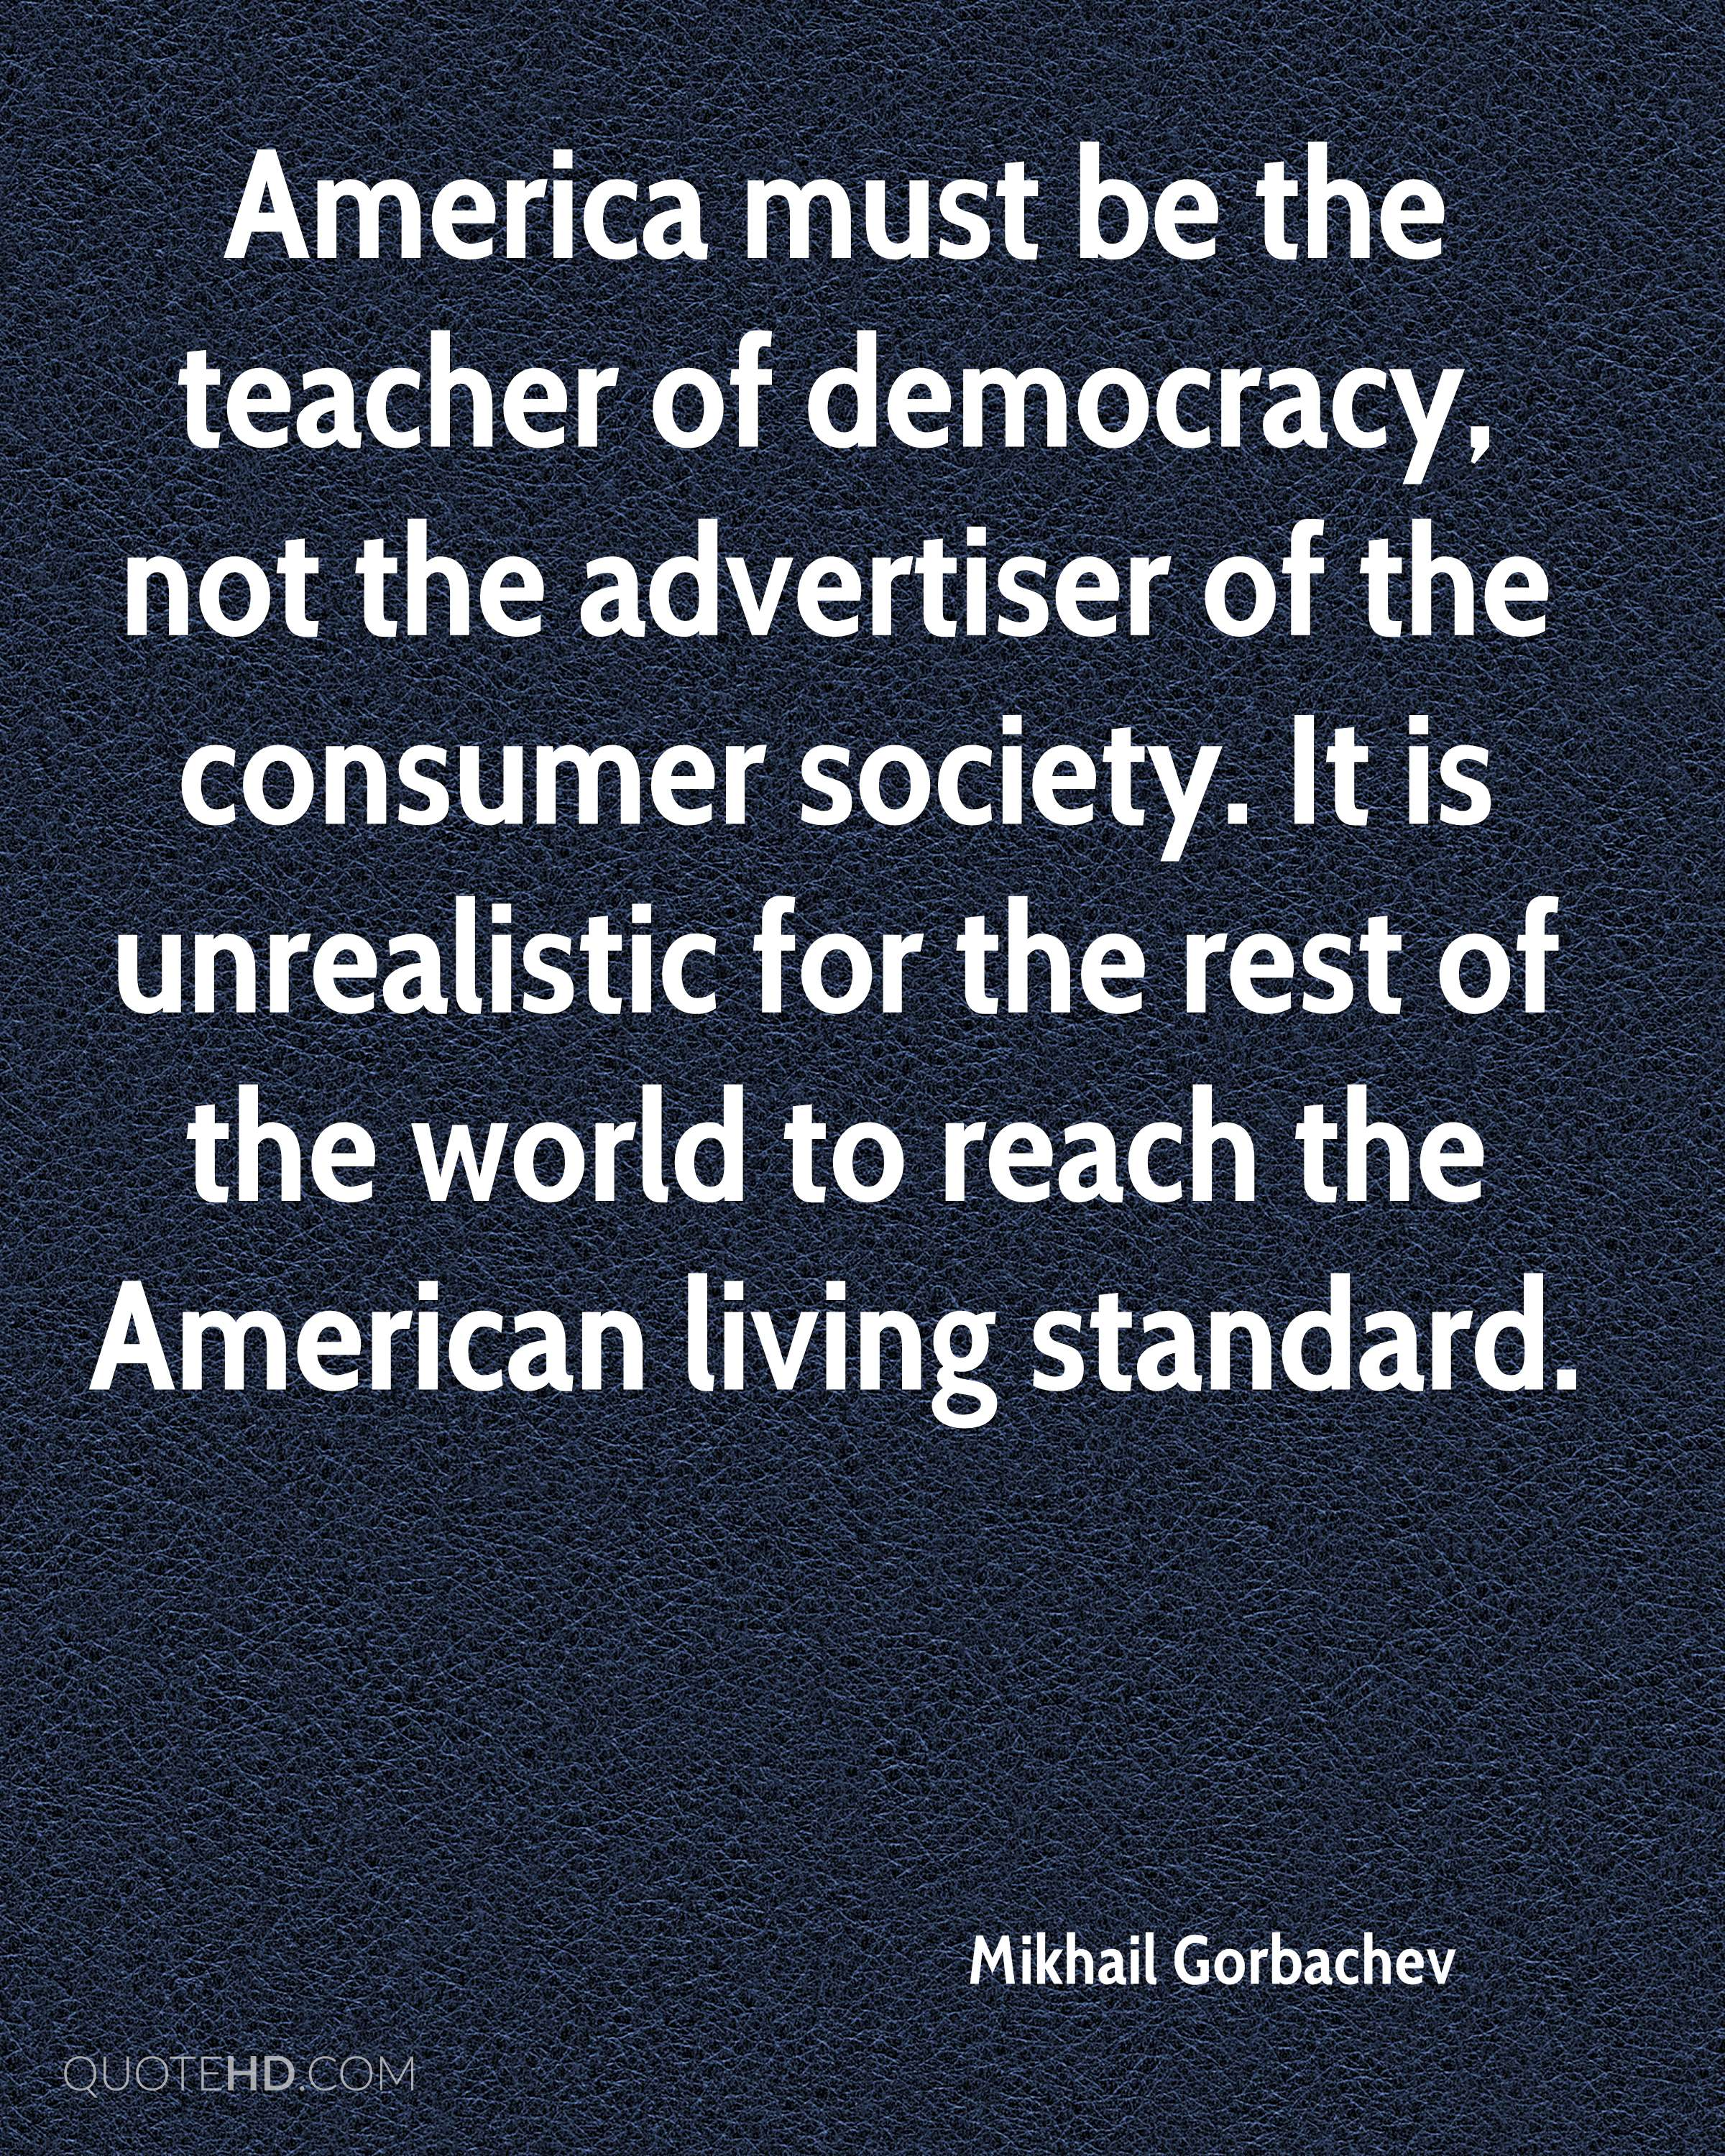 America must be the teacher of democracy, not the advertiser of the consumer society. It is unrealistic for the rest of the world to reach the American living standard.